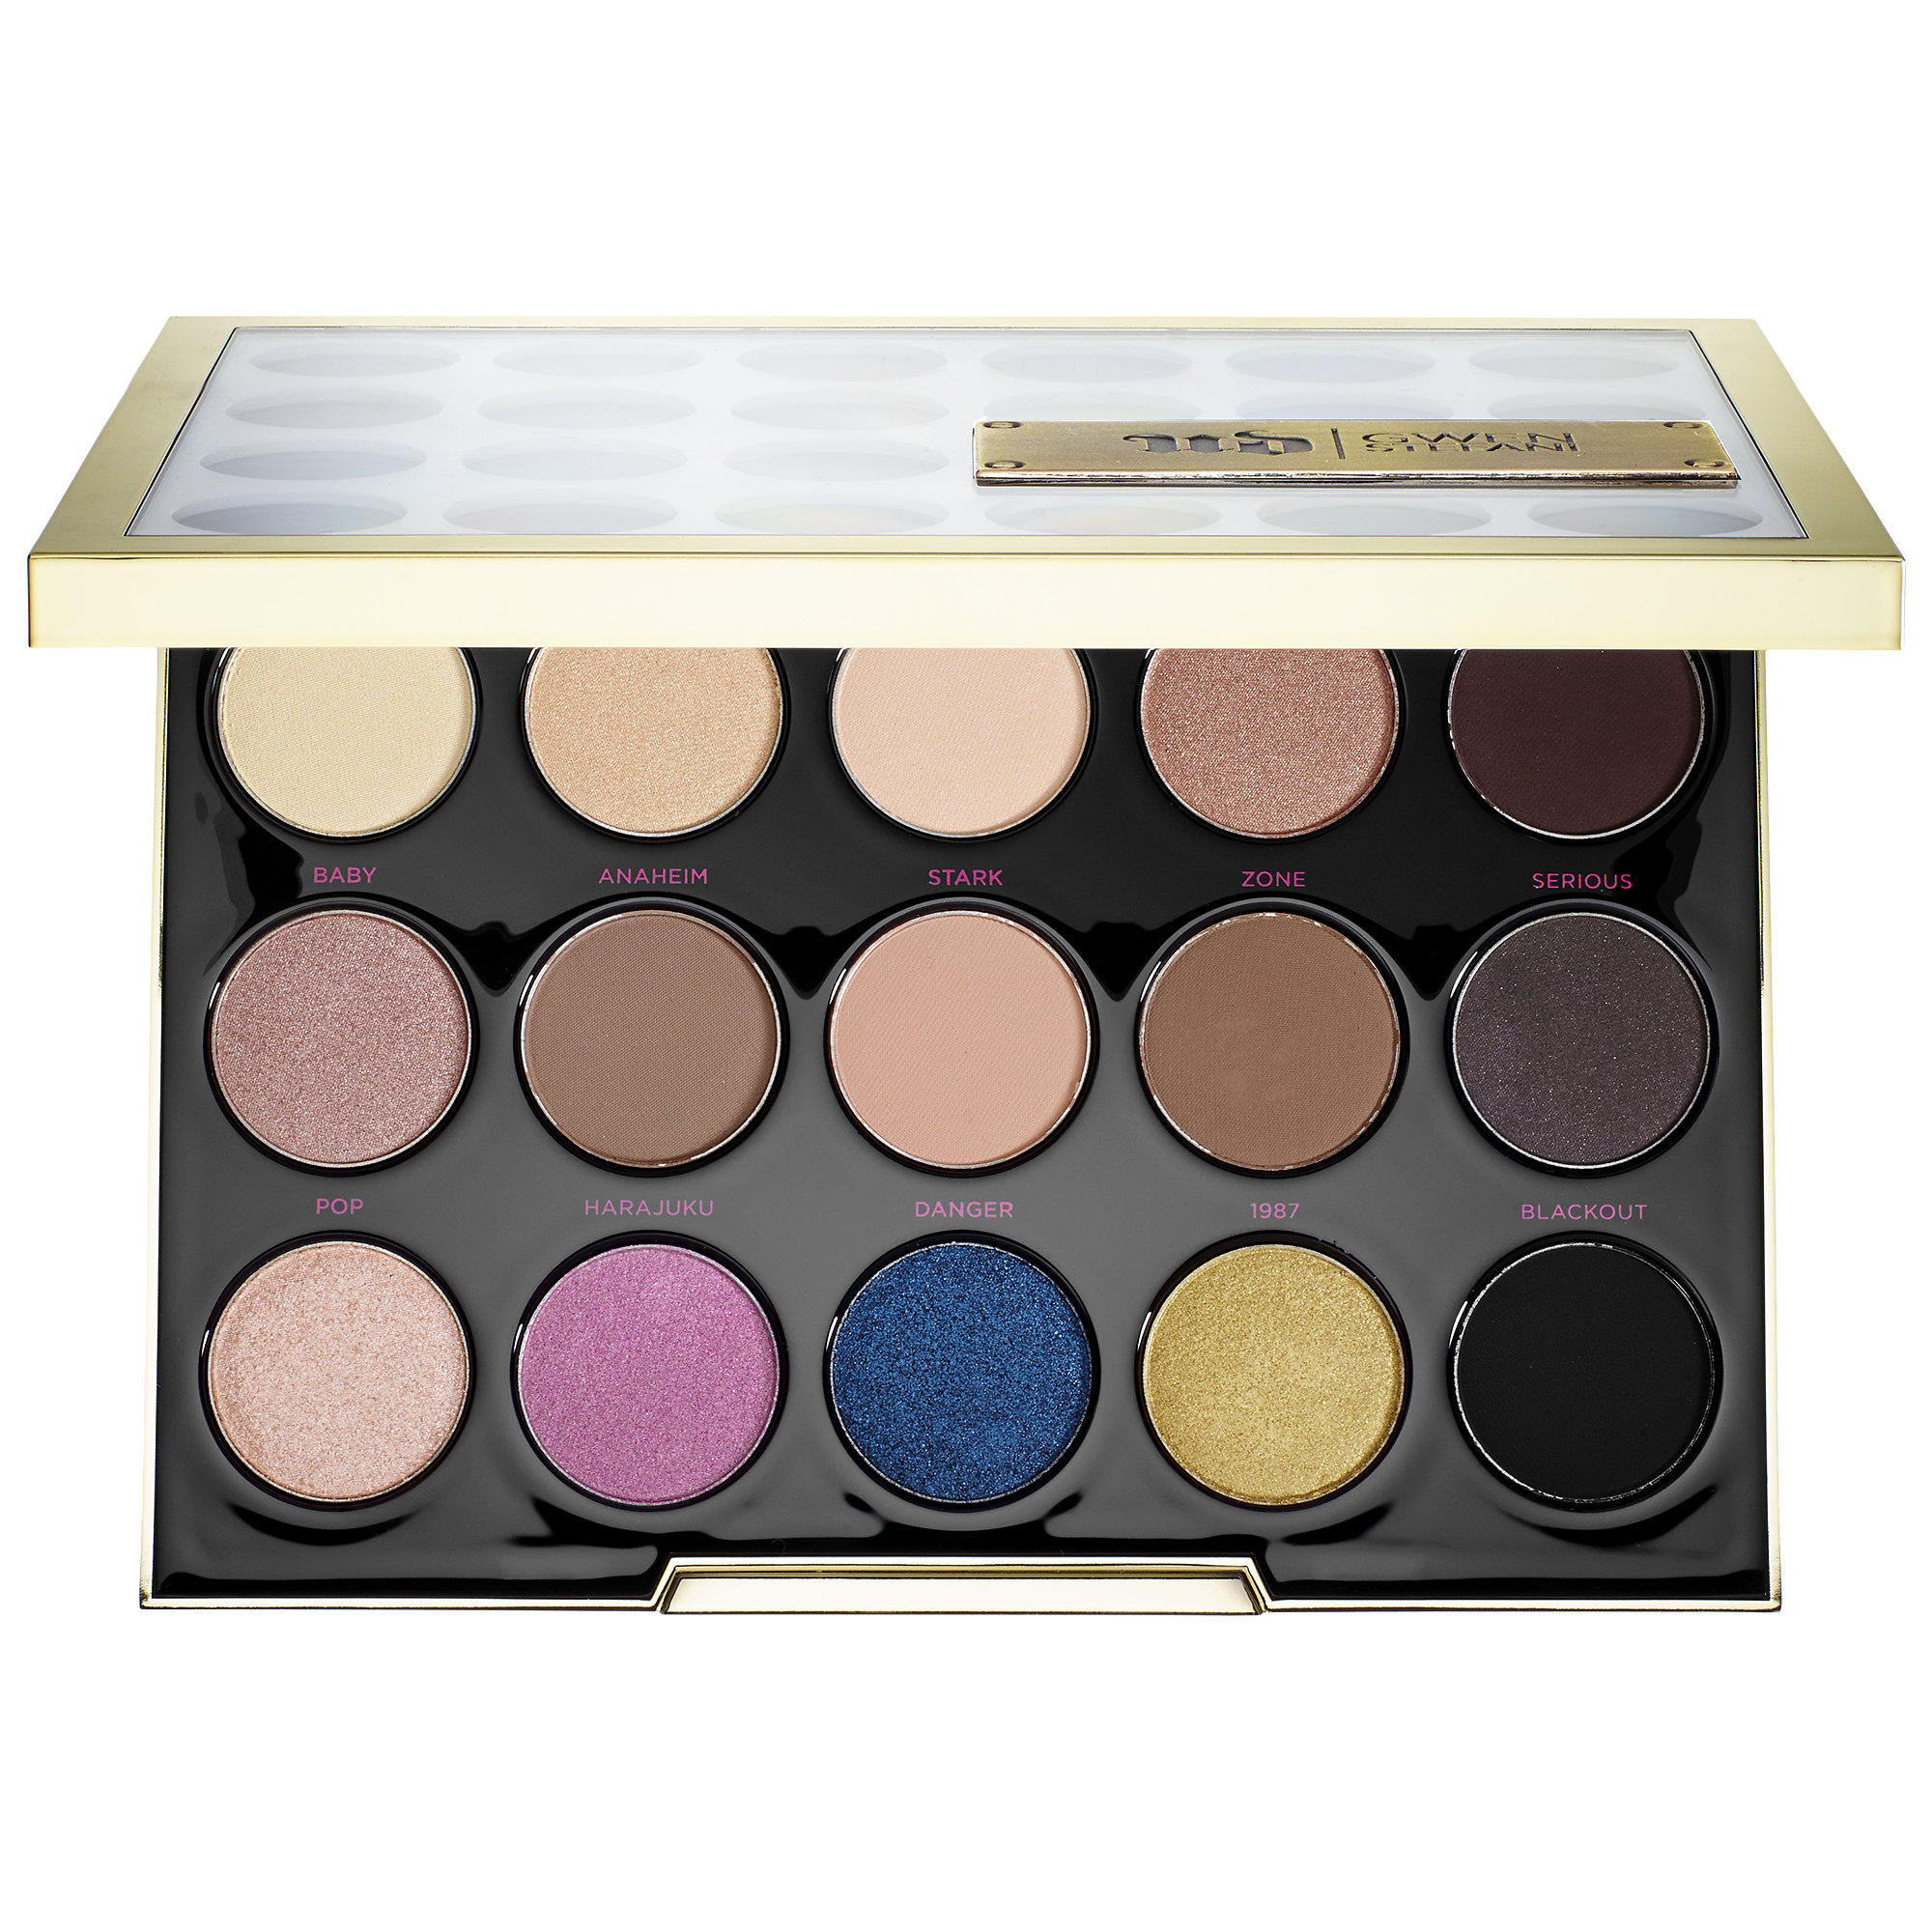 New Release Urban Decay launched New UD Gwen Stefani Eyeshadow Palette